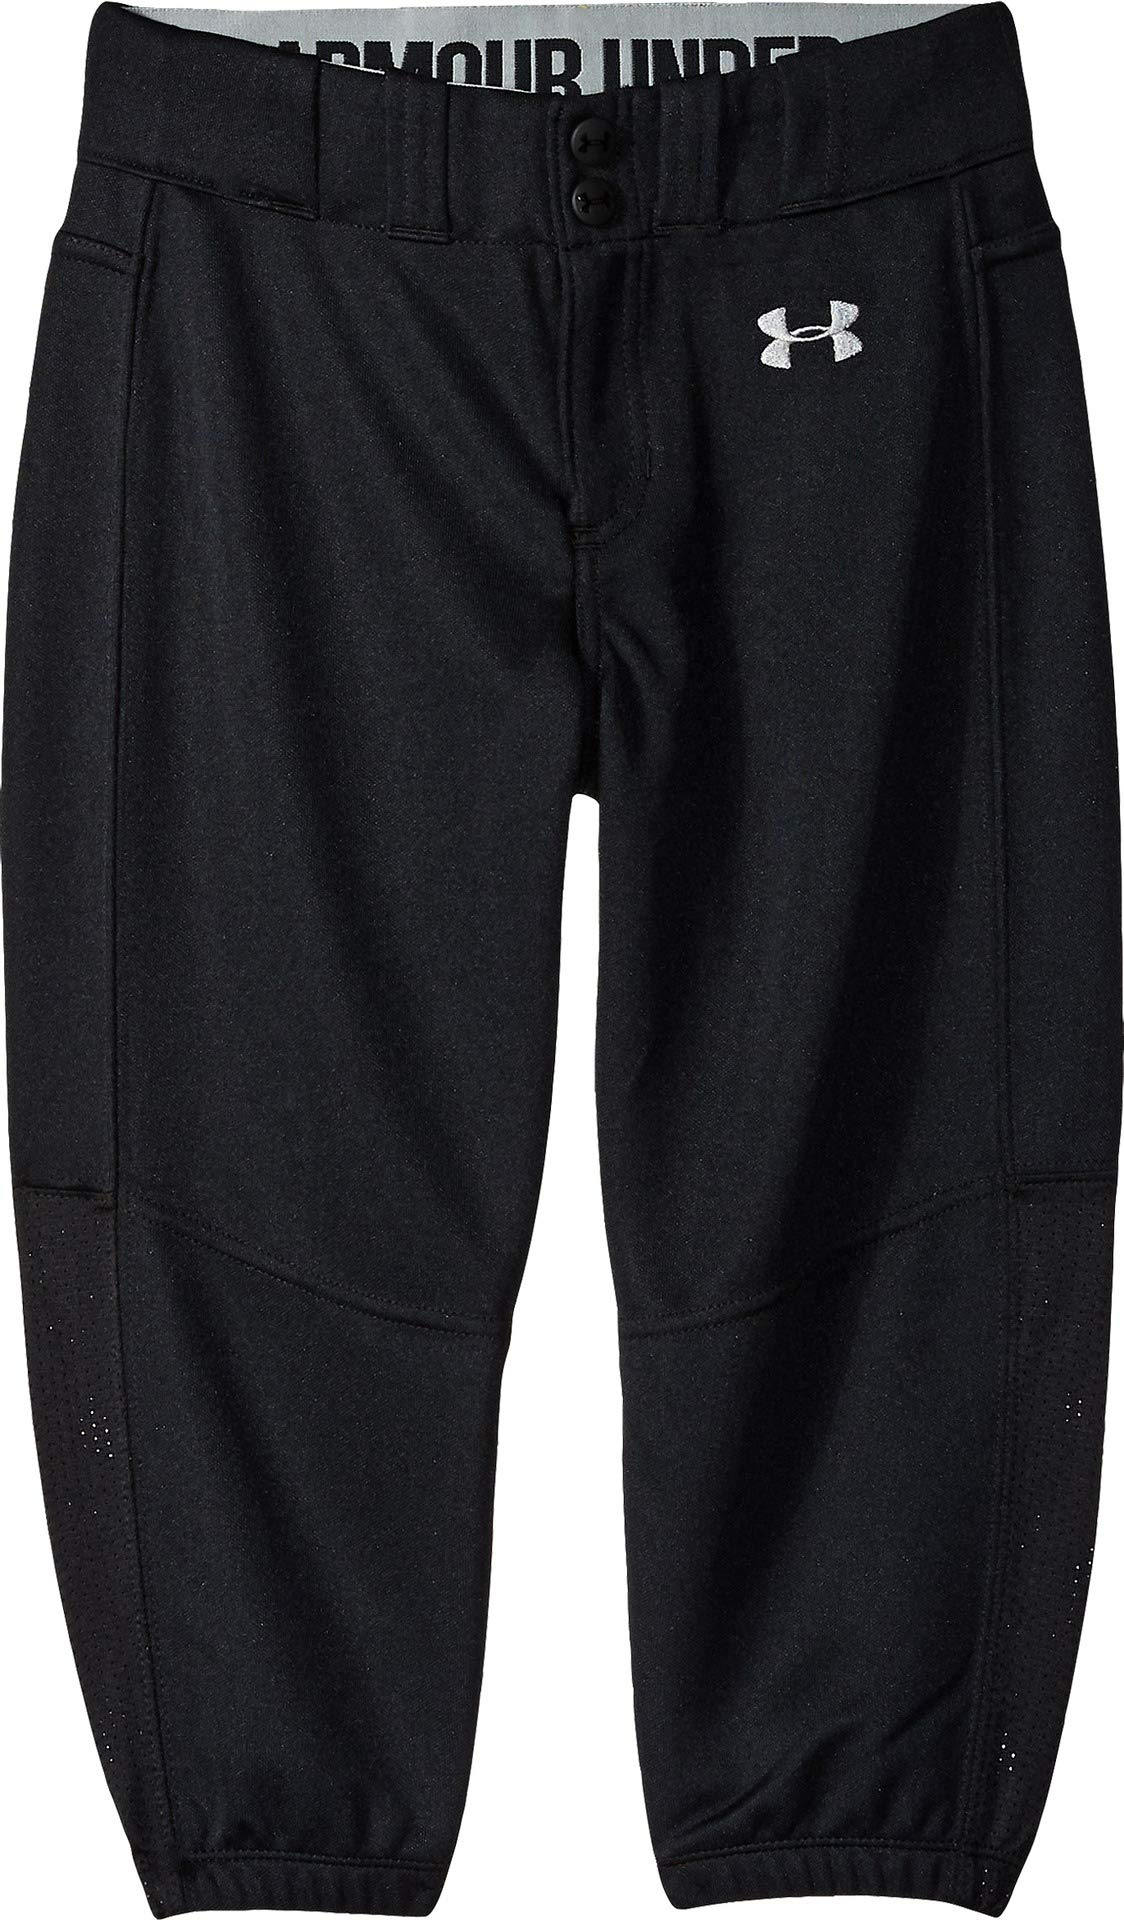 Under Armour Girls Softball Pants, Black, Youth X-Large by Under Armour